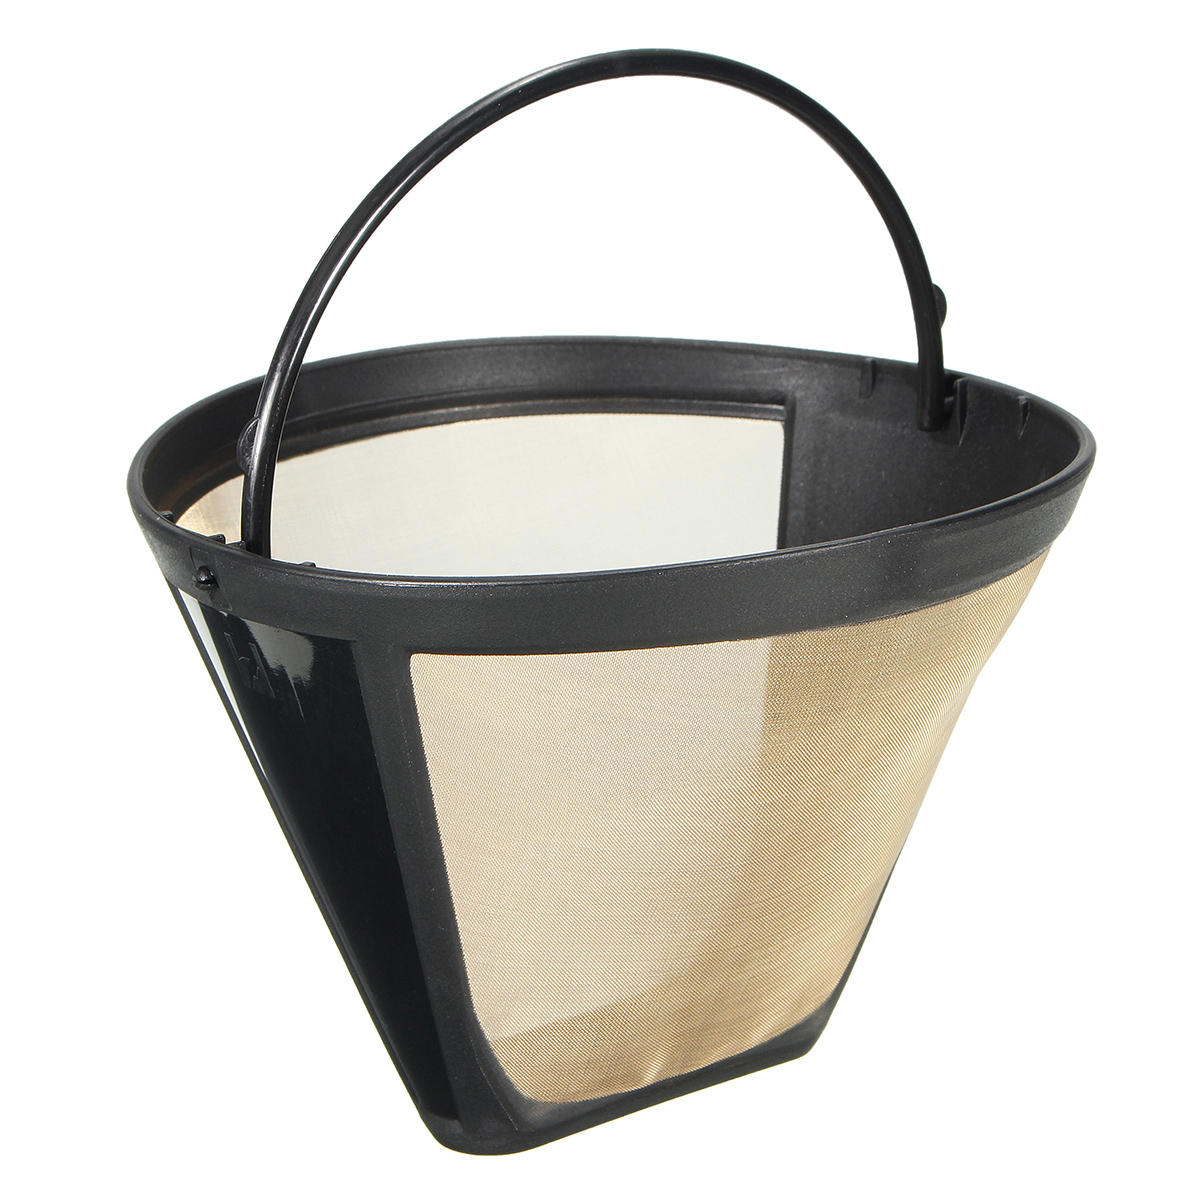 Permanent Reusable #4 Cone Shape Coffee Filter Stainless Mesh Basket Gold Tone 118x85x55mm